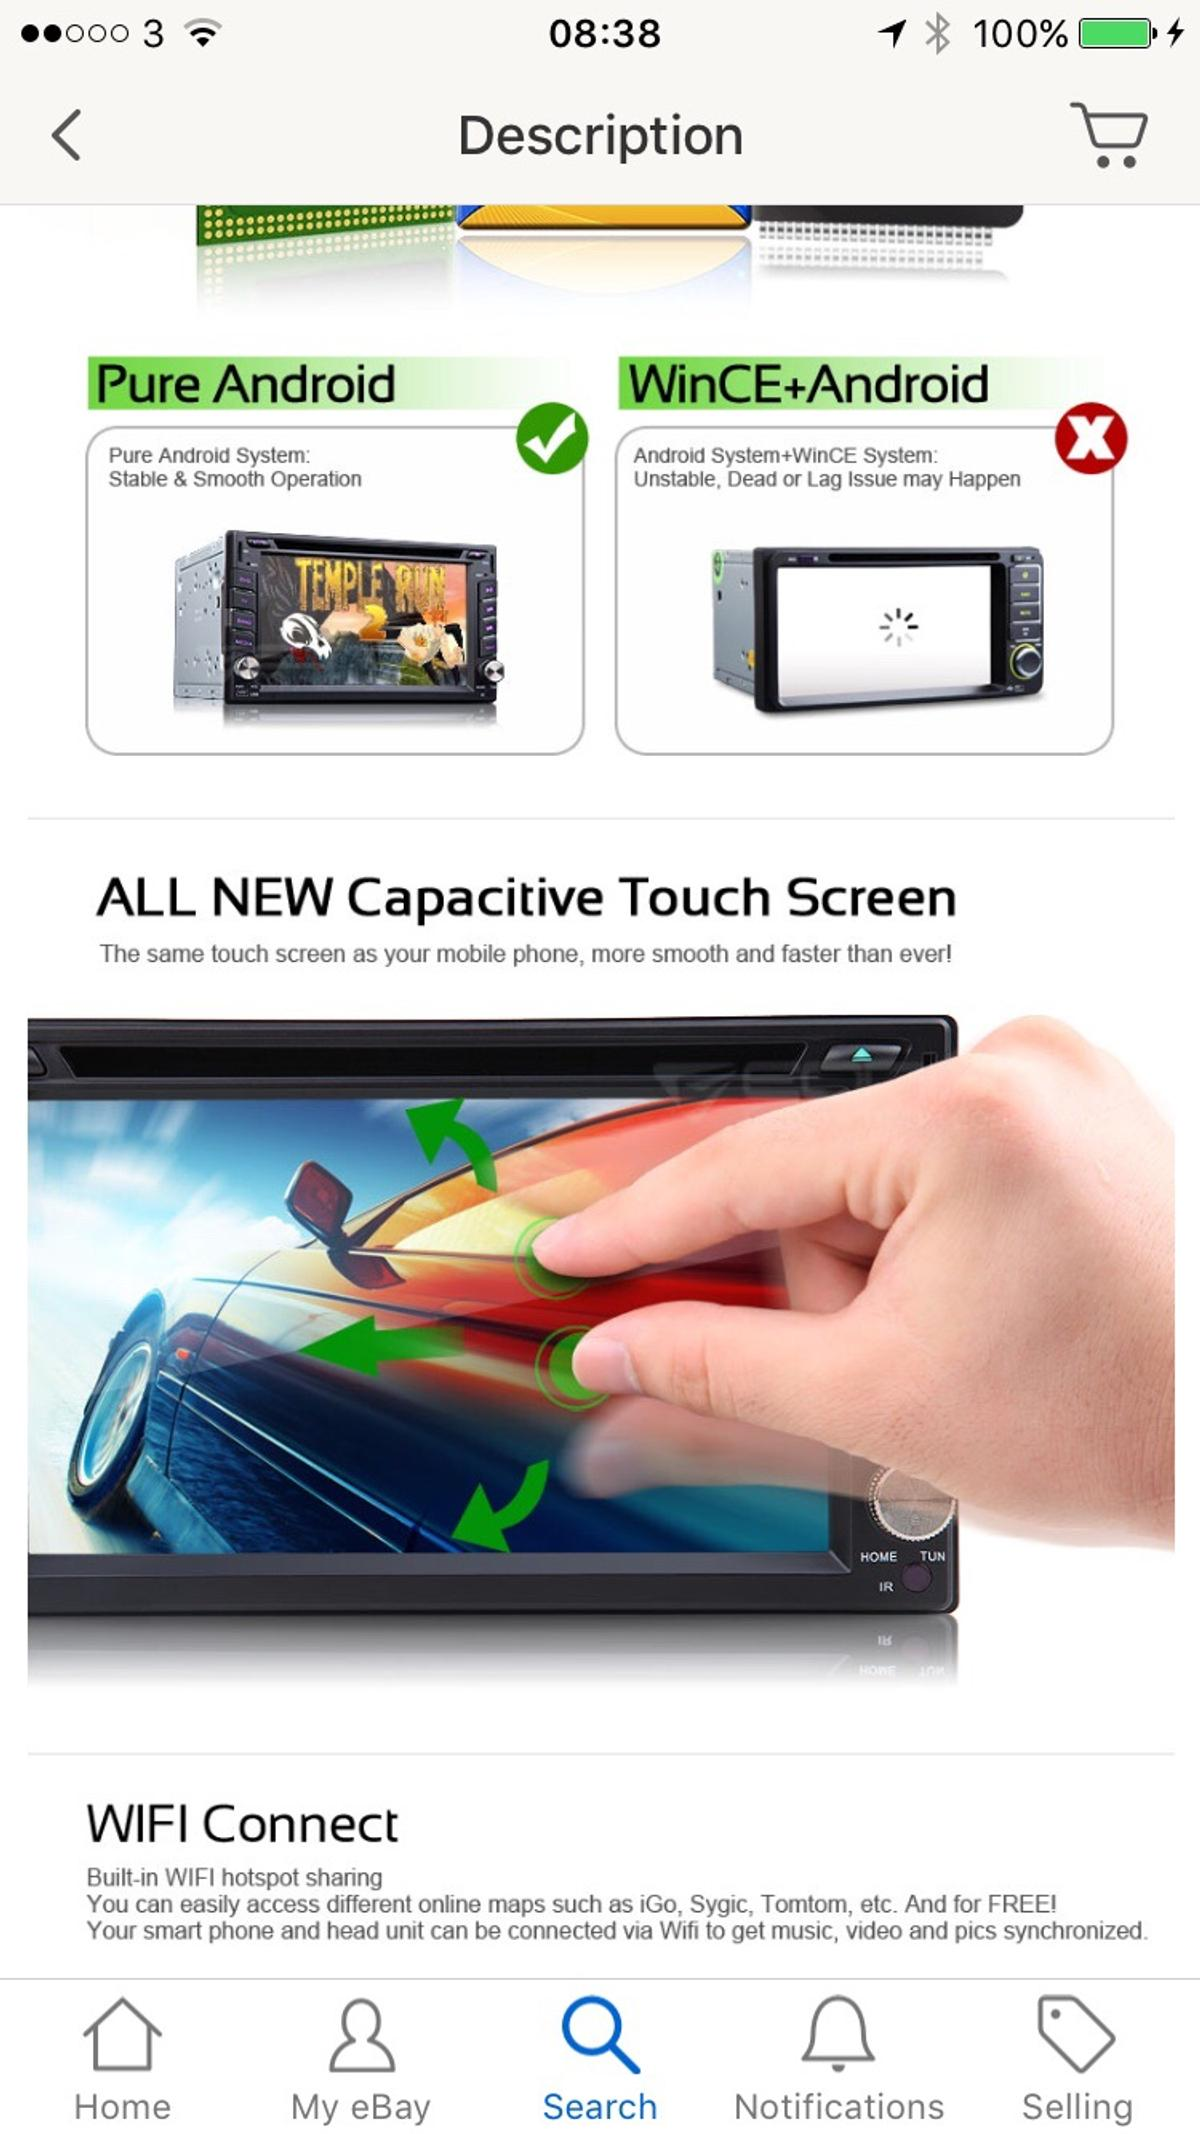 Eonon G2110 Android Double din car dvd in NW10 London for £185 00